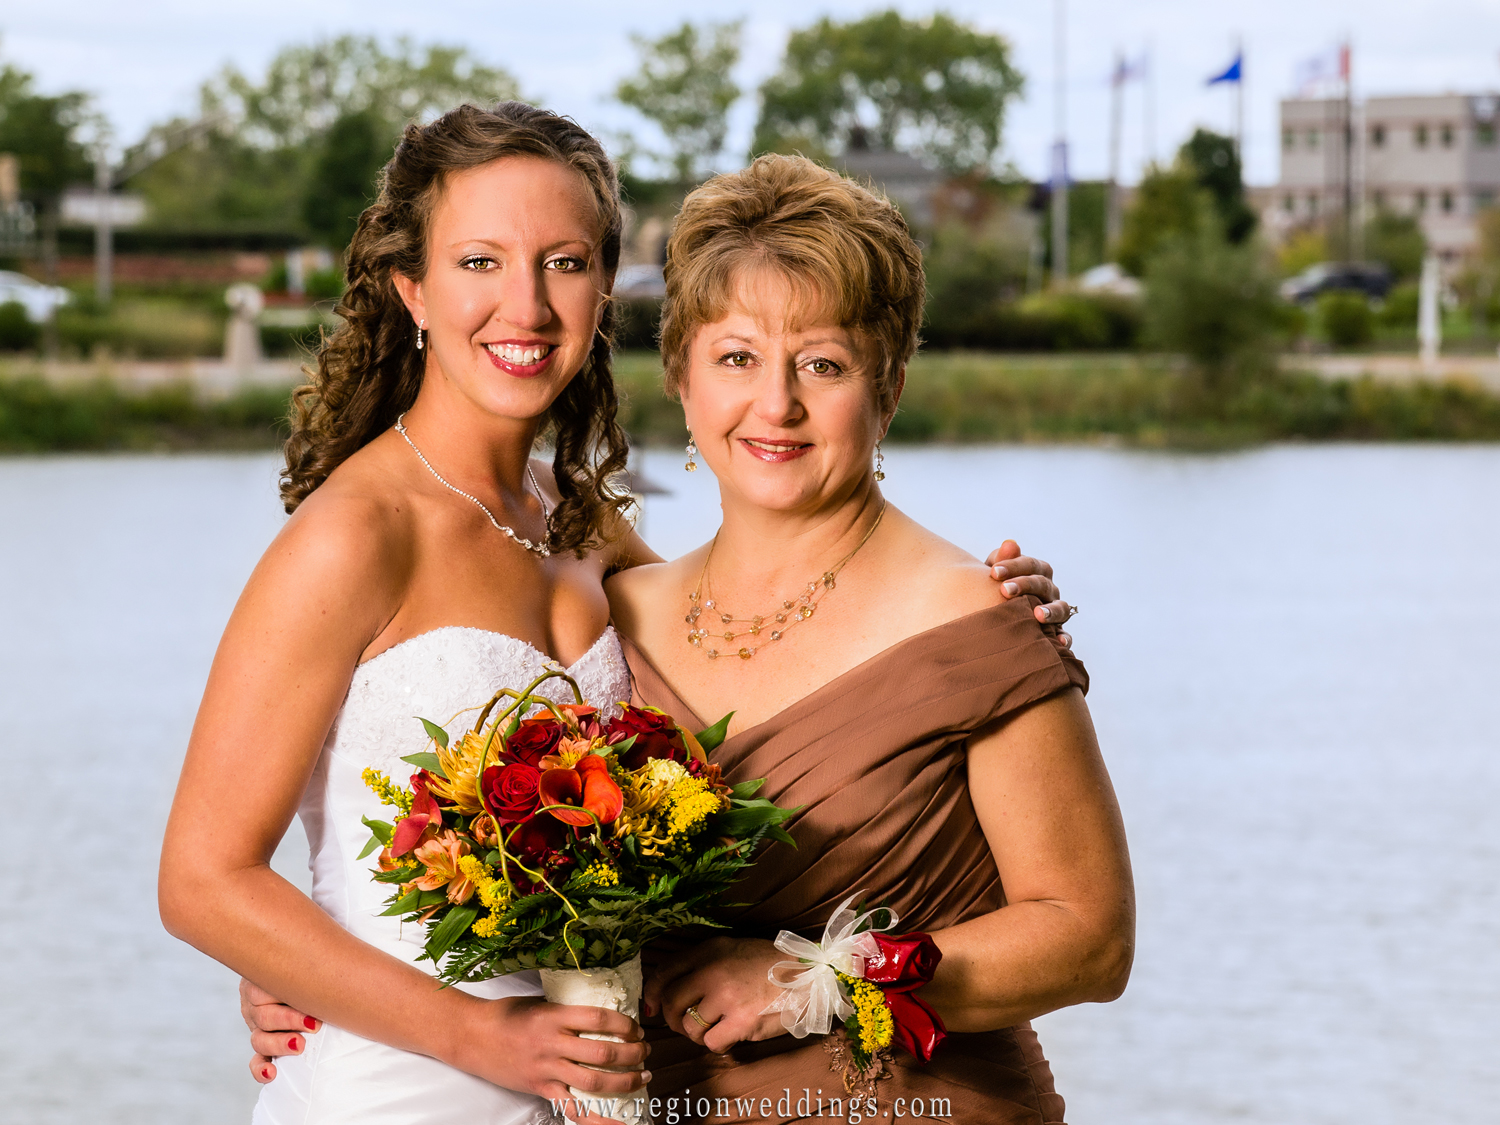 A bride and her mother on the outdoor terrace at Centennial Park.